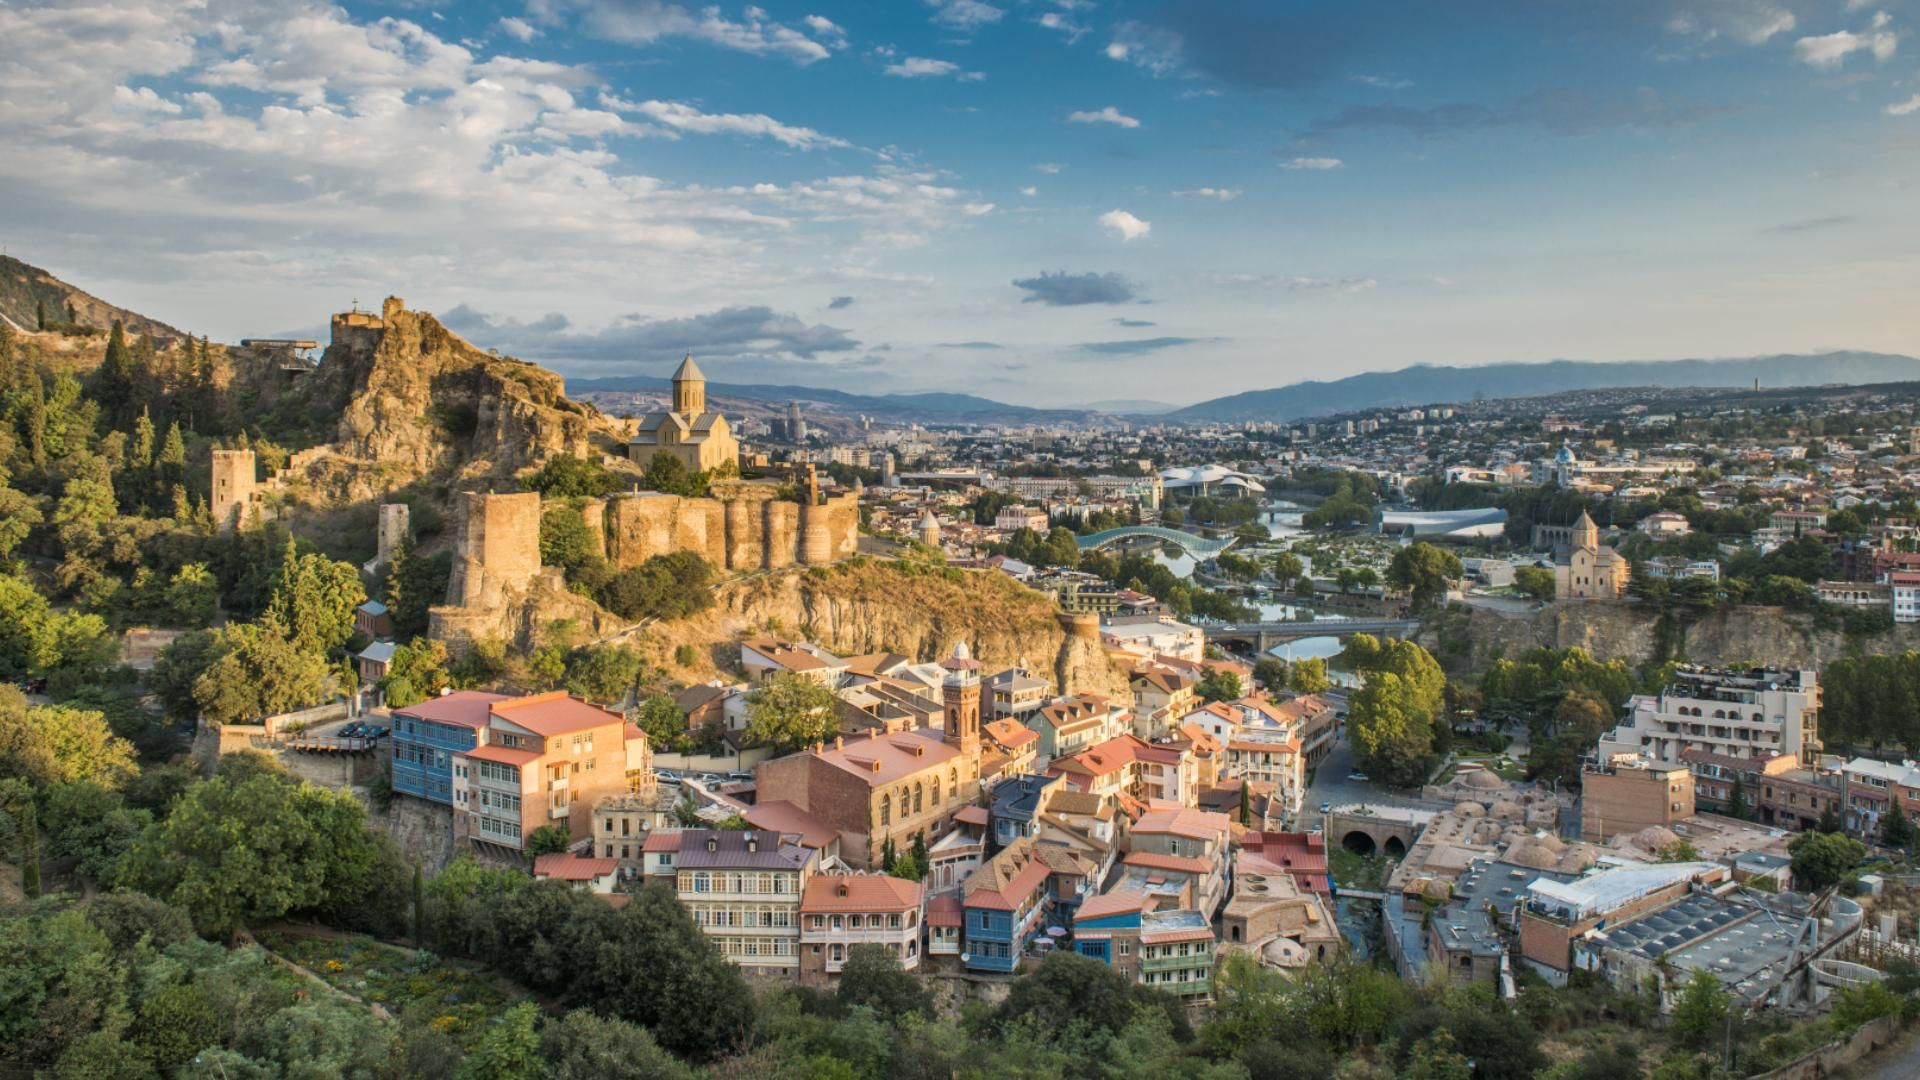 Tbilisi Is One Of Europe S Under The Radar Gems With A Beautiful Old Town Delicio Cool Places To Visit Solo Travel Destinations Best Solo Travel Destinations